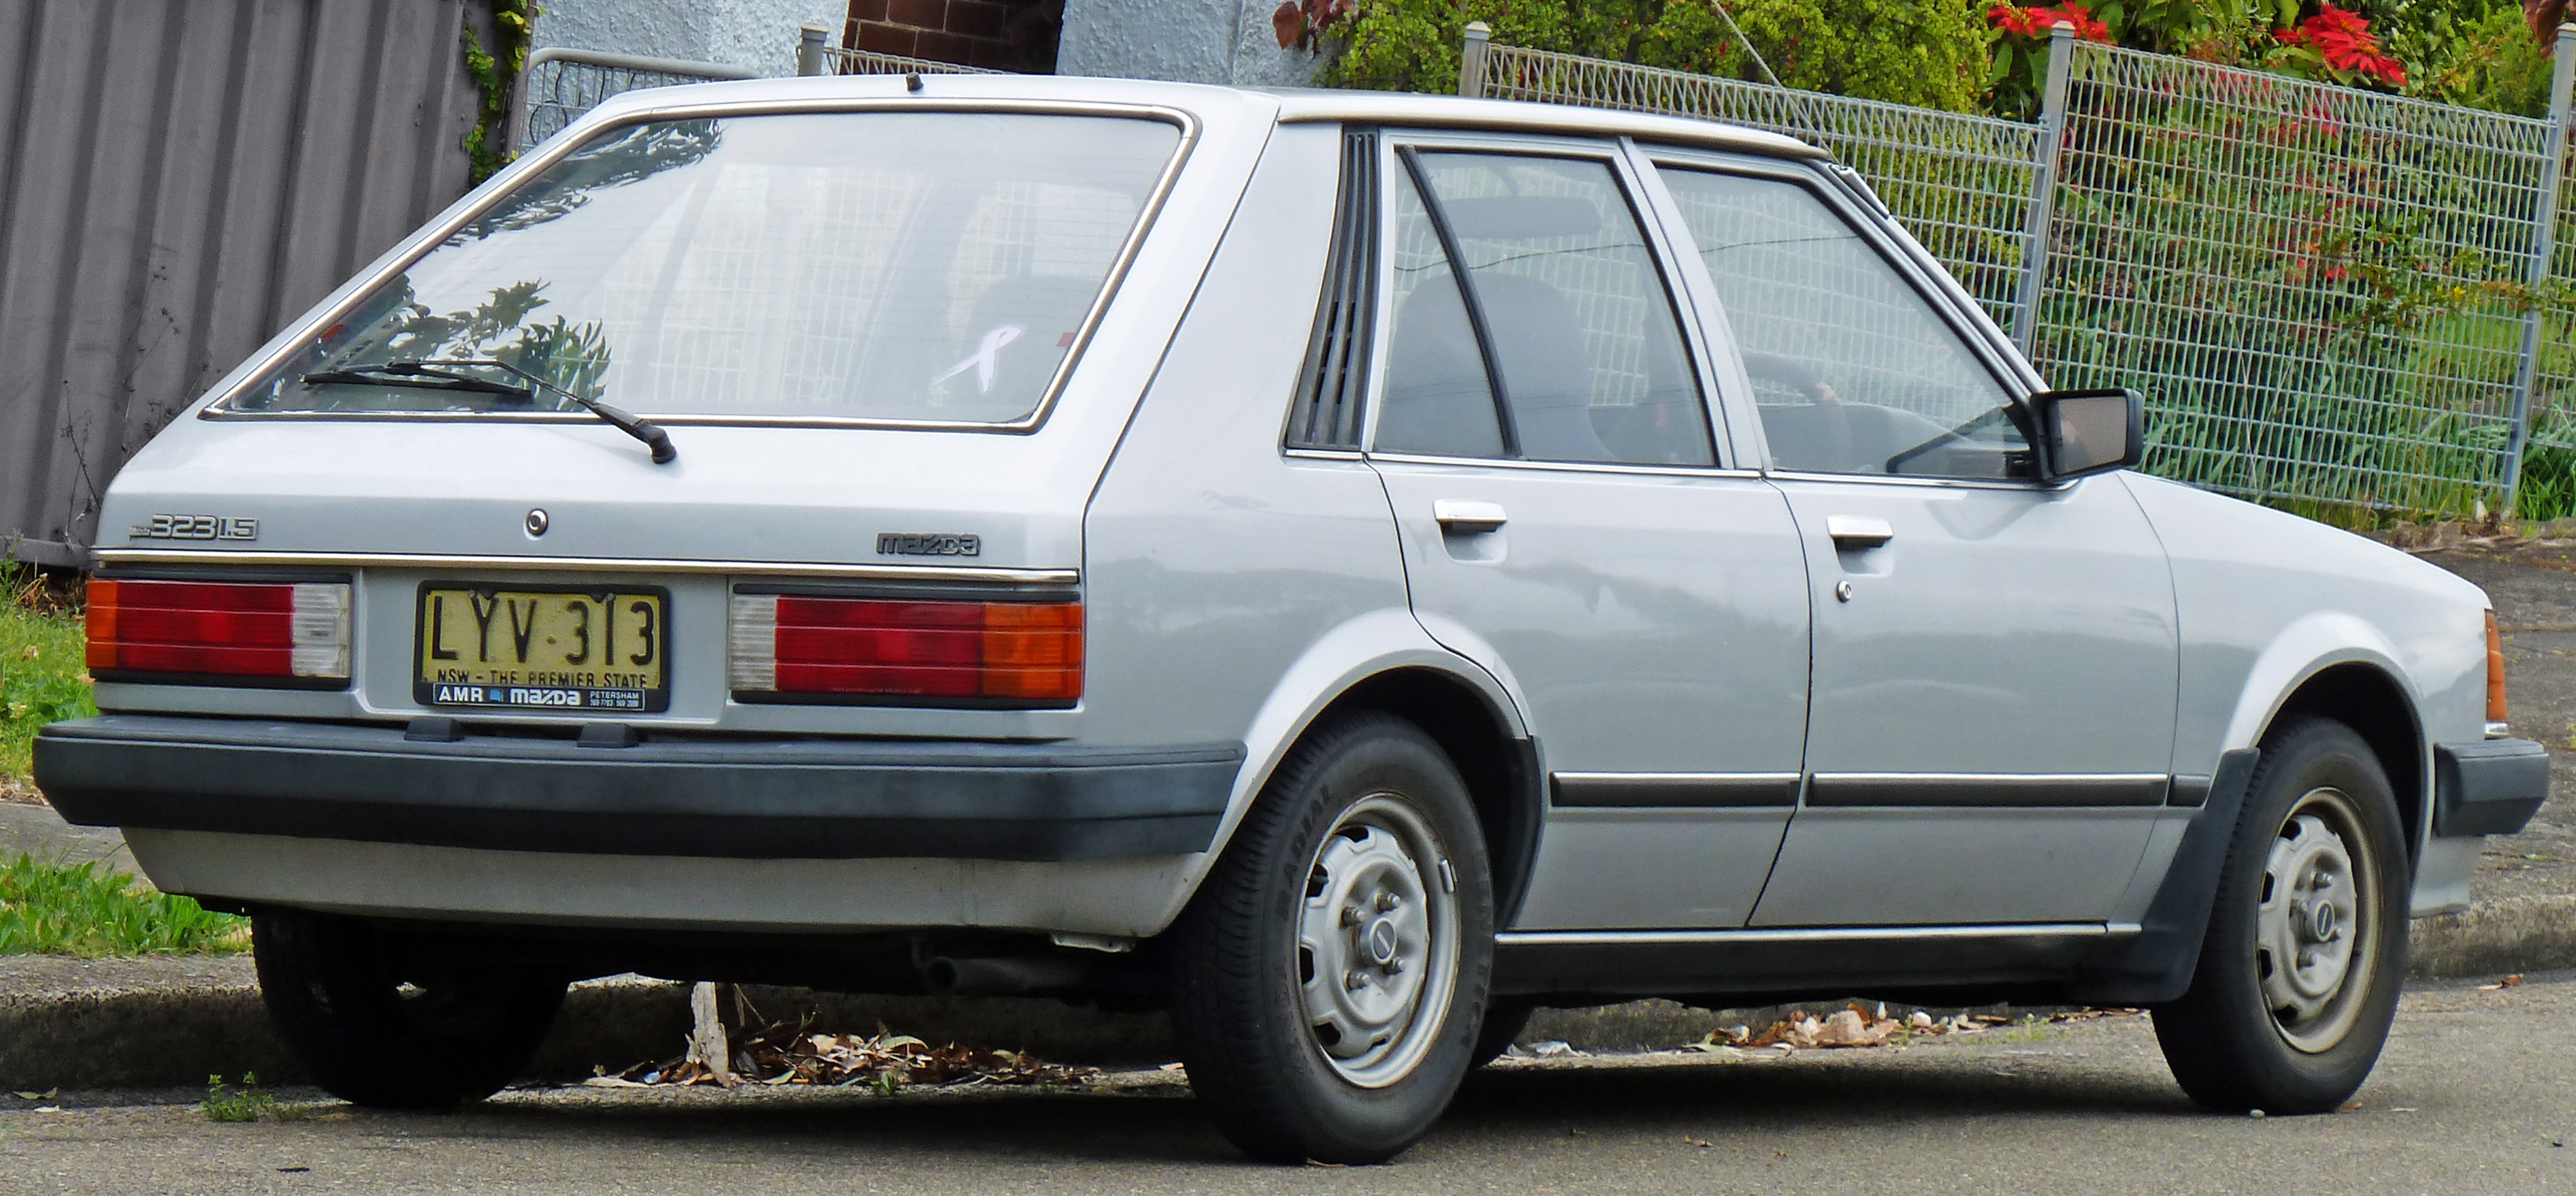 Mazda Glc 1980  Review  Amazing Pictures And Images  U2013 Look At The Car